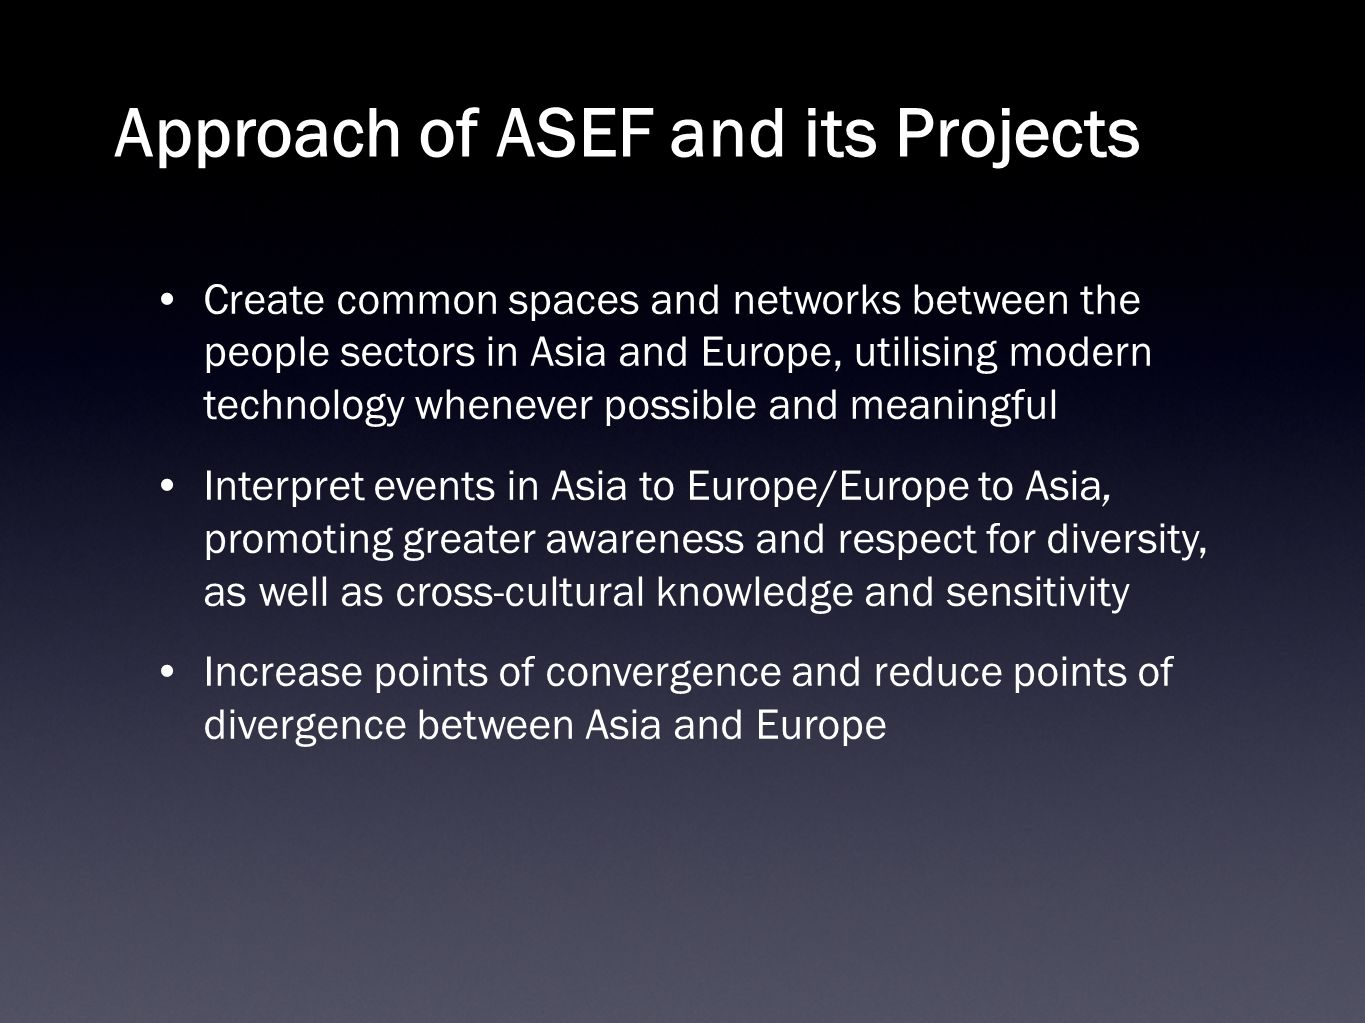 Approach of ASEF and its Projects Create common spaces and networks between the people sectors in Asia and Europe, utilising modern technology whenever possible and meaningful Interpret events in Asia to Europe/Europe to Asia, promoting greater awareness and respect for diversity, as well as cross-cultural knowledge and sensitivity Increase points of convergence and reduce points of divergence between Asia and Europe